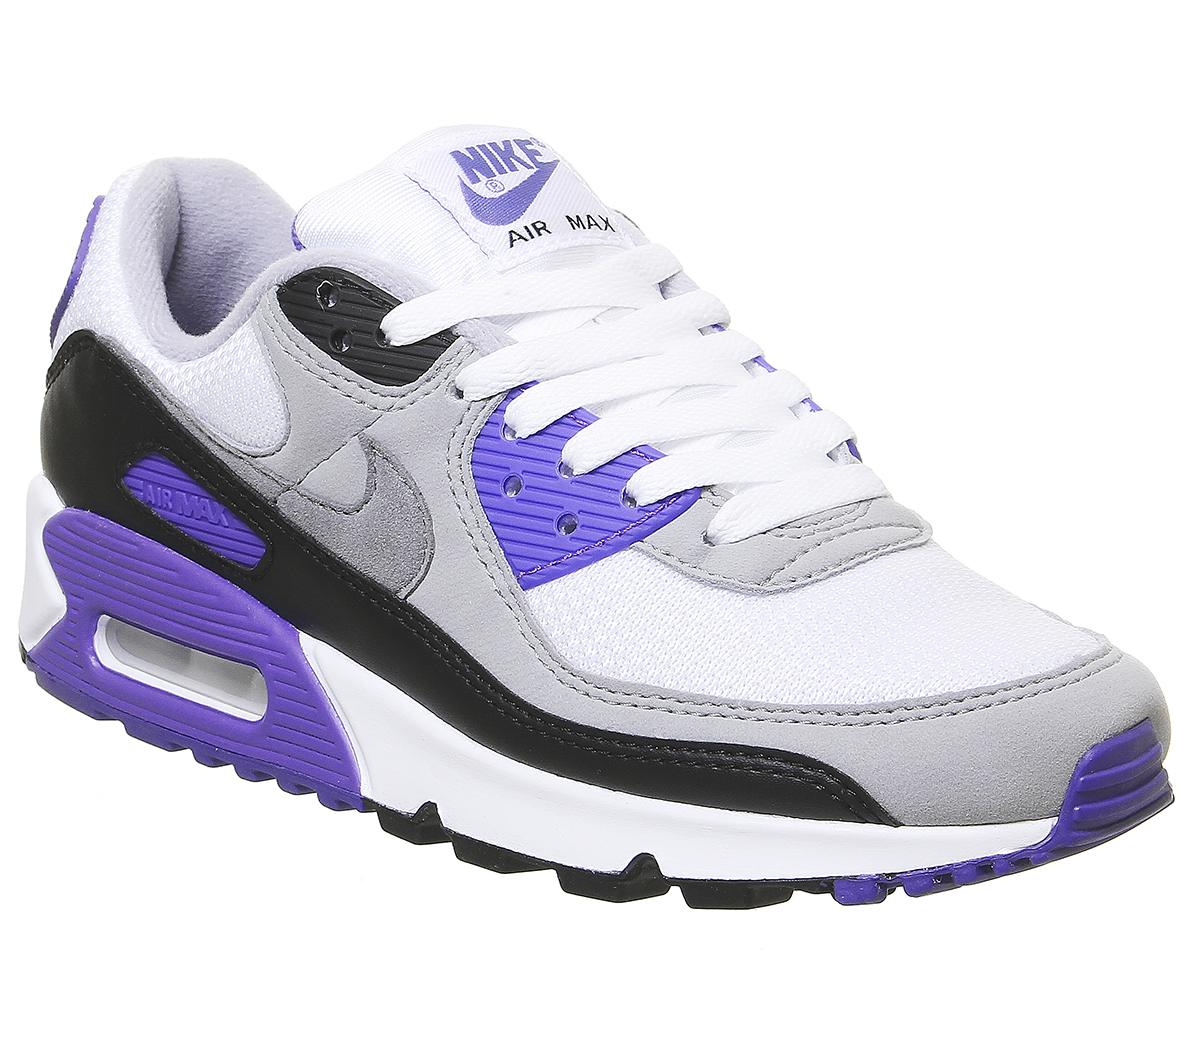 camino convergencia Condición previa  Nike Air Max 90 Trainers White Grey Hyper Grape - Unisex Sports